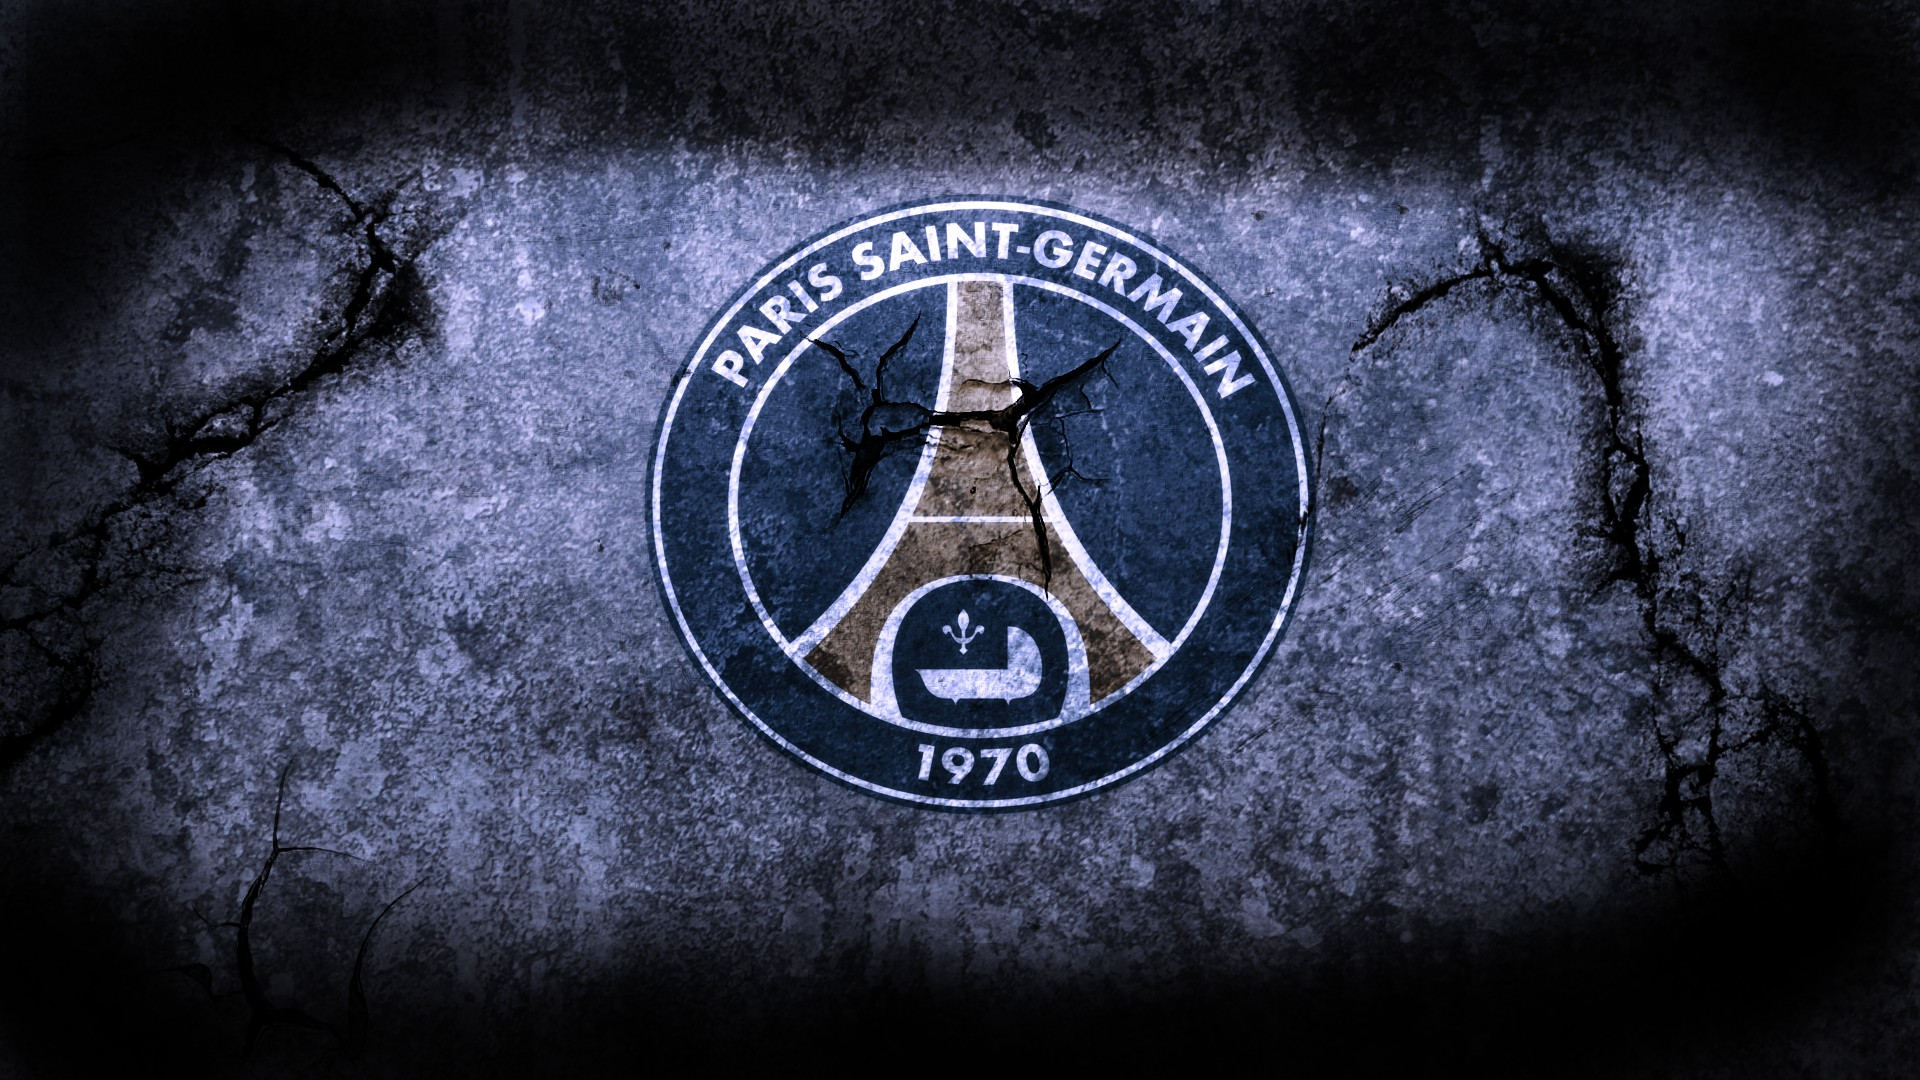 1920x1080 - Paris Saint-Germain F.C. Wallpapers 22